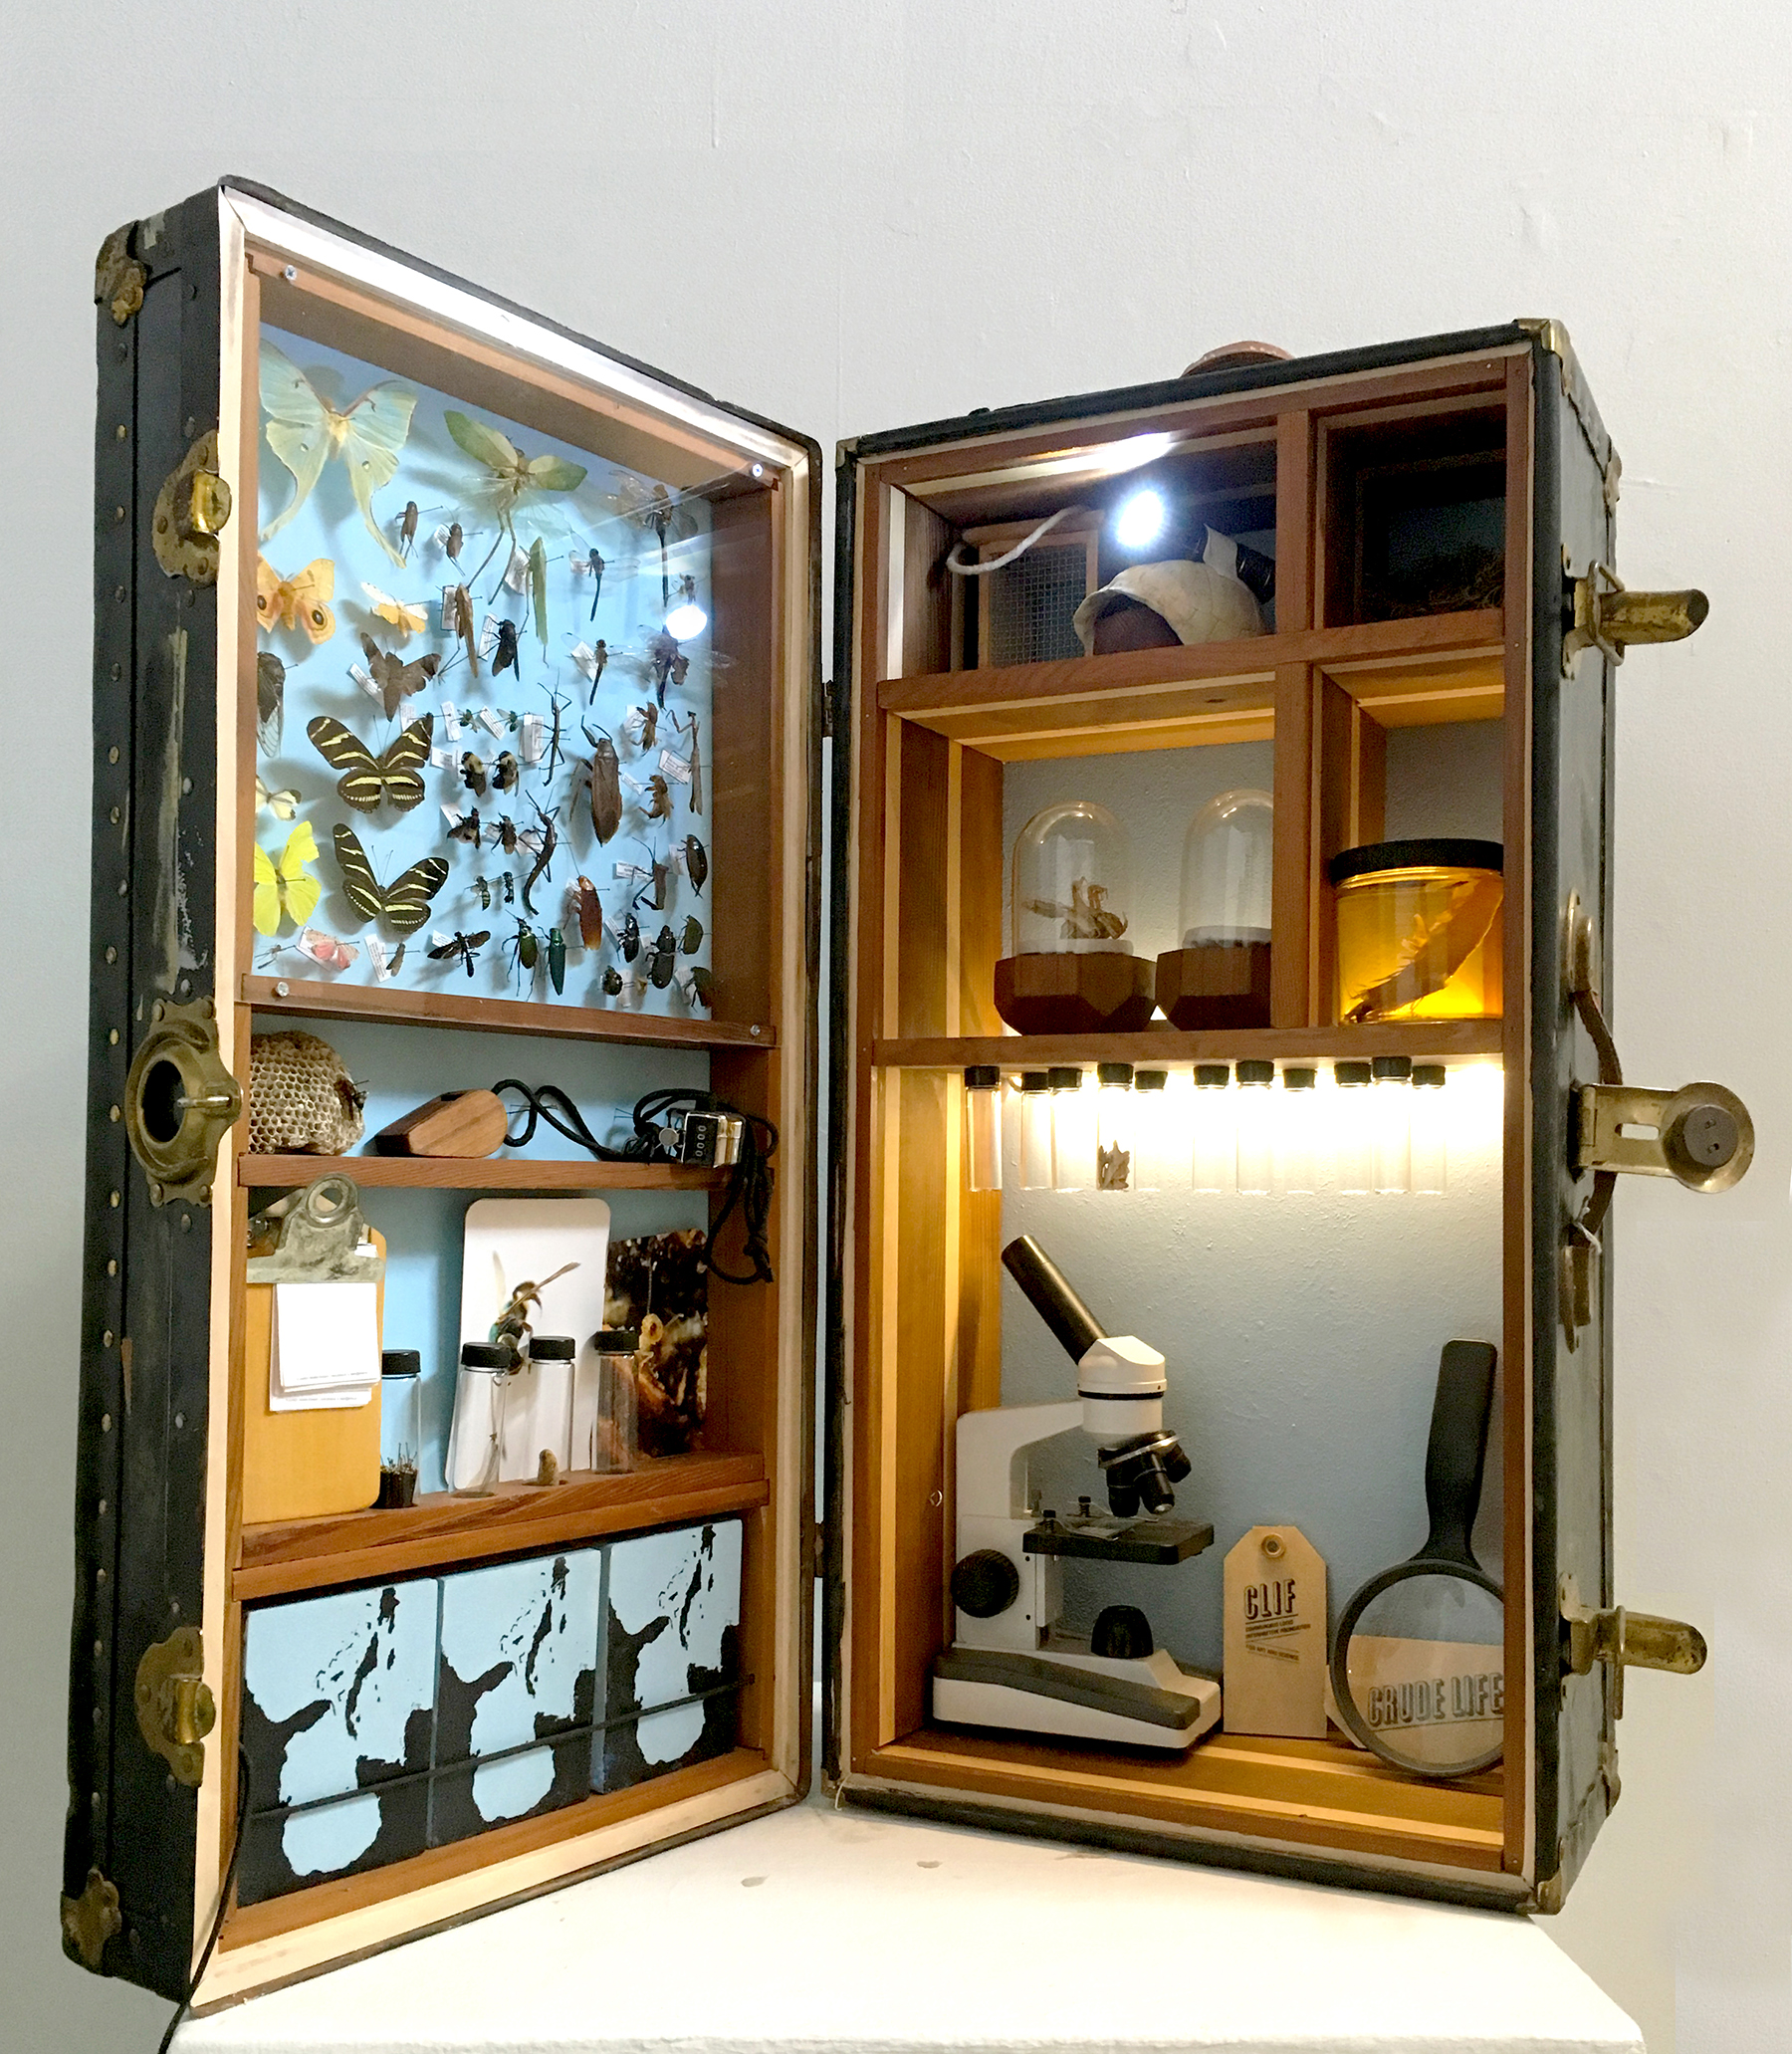 Crude Life Portable Biodiversity Museum for the Gulf of Mexico (Invertebrate Gallery), Sean Miller in collaboration with Brandon Ballengee , 2016